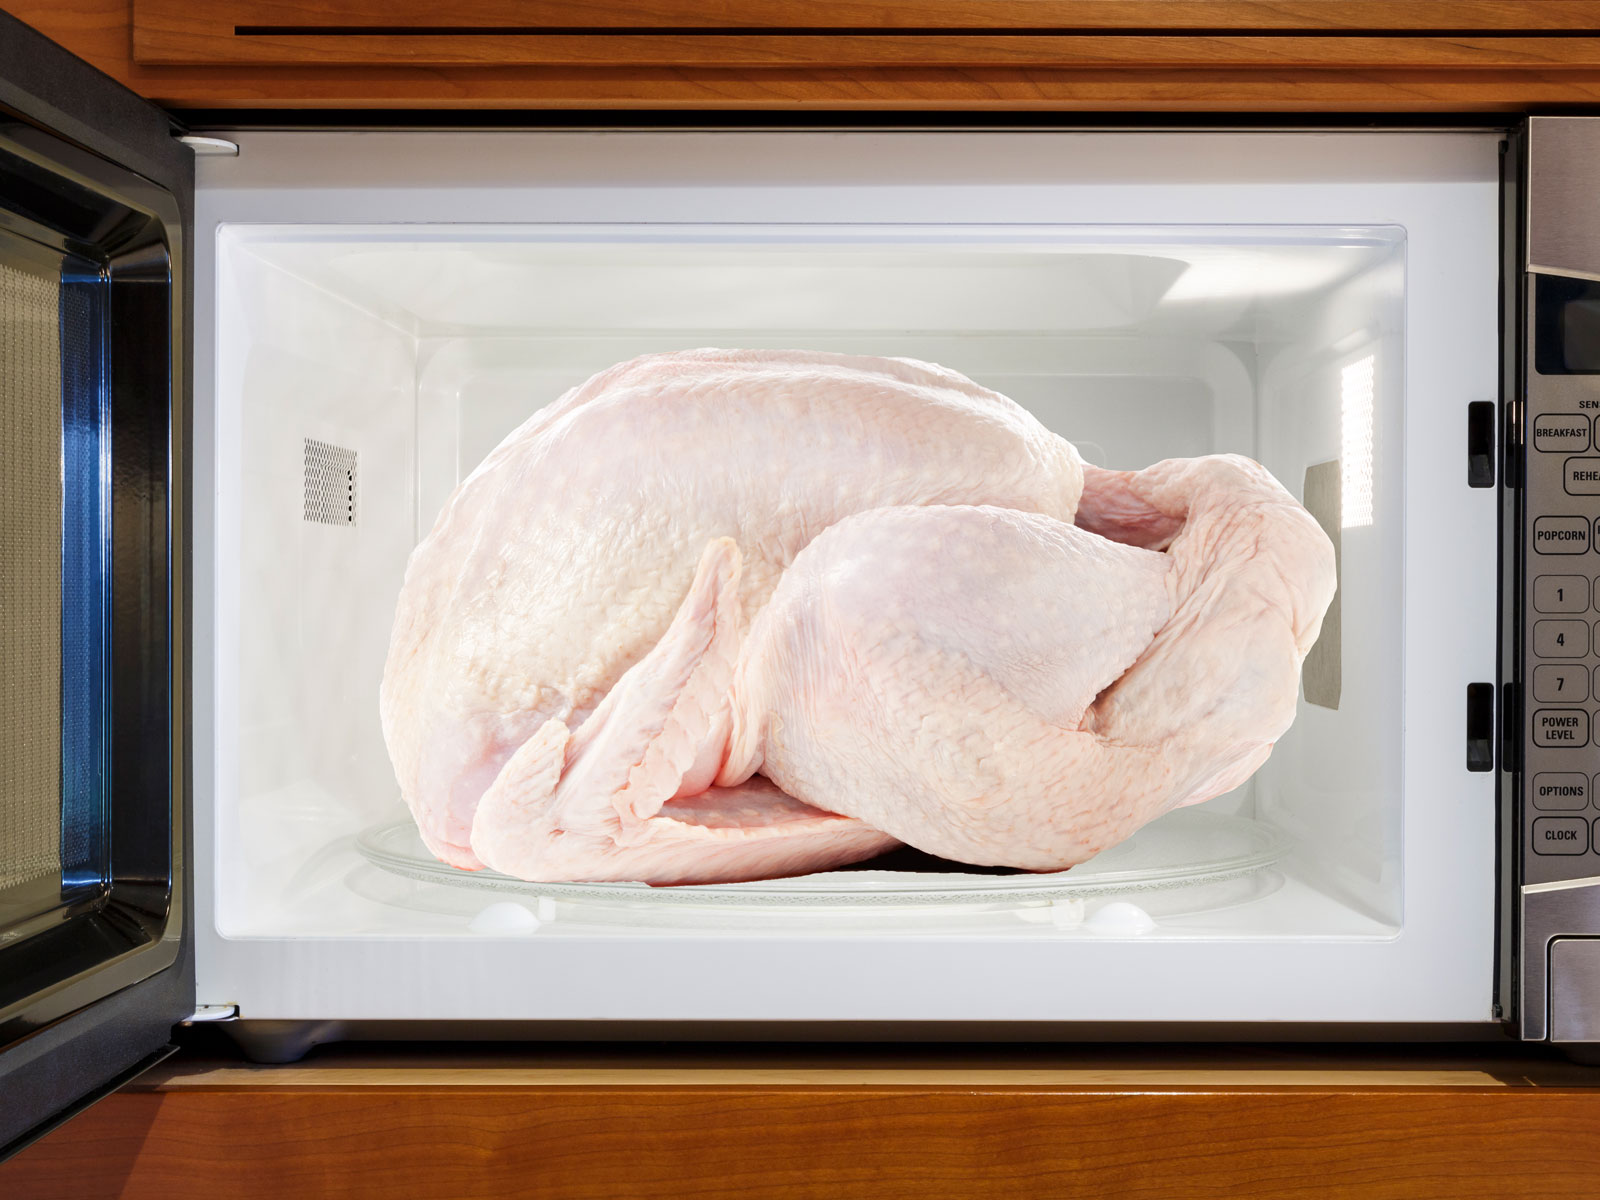 Microwaving Turkey